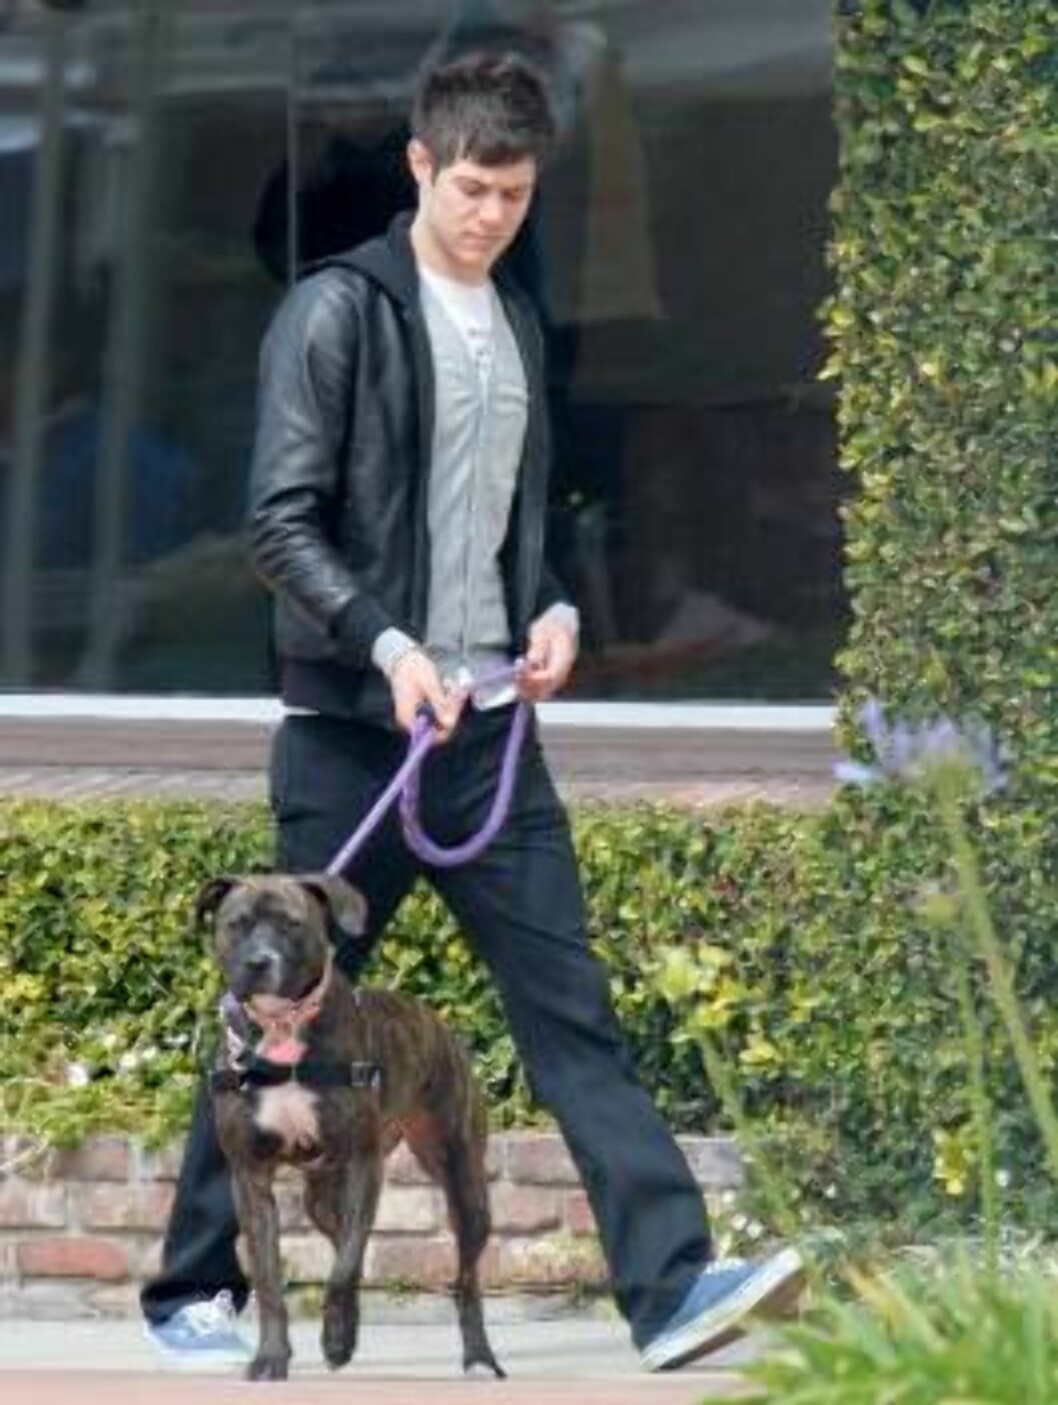 OC star Adam Brody walking his dog in Hollywood. March 24, 2006 X17agency EXCLUSIVE / ALL OVER PRESS Foto: All Over Press